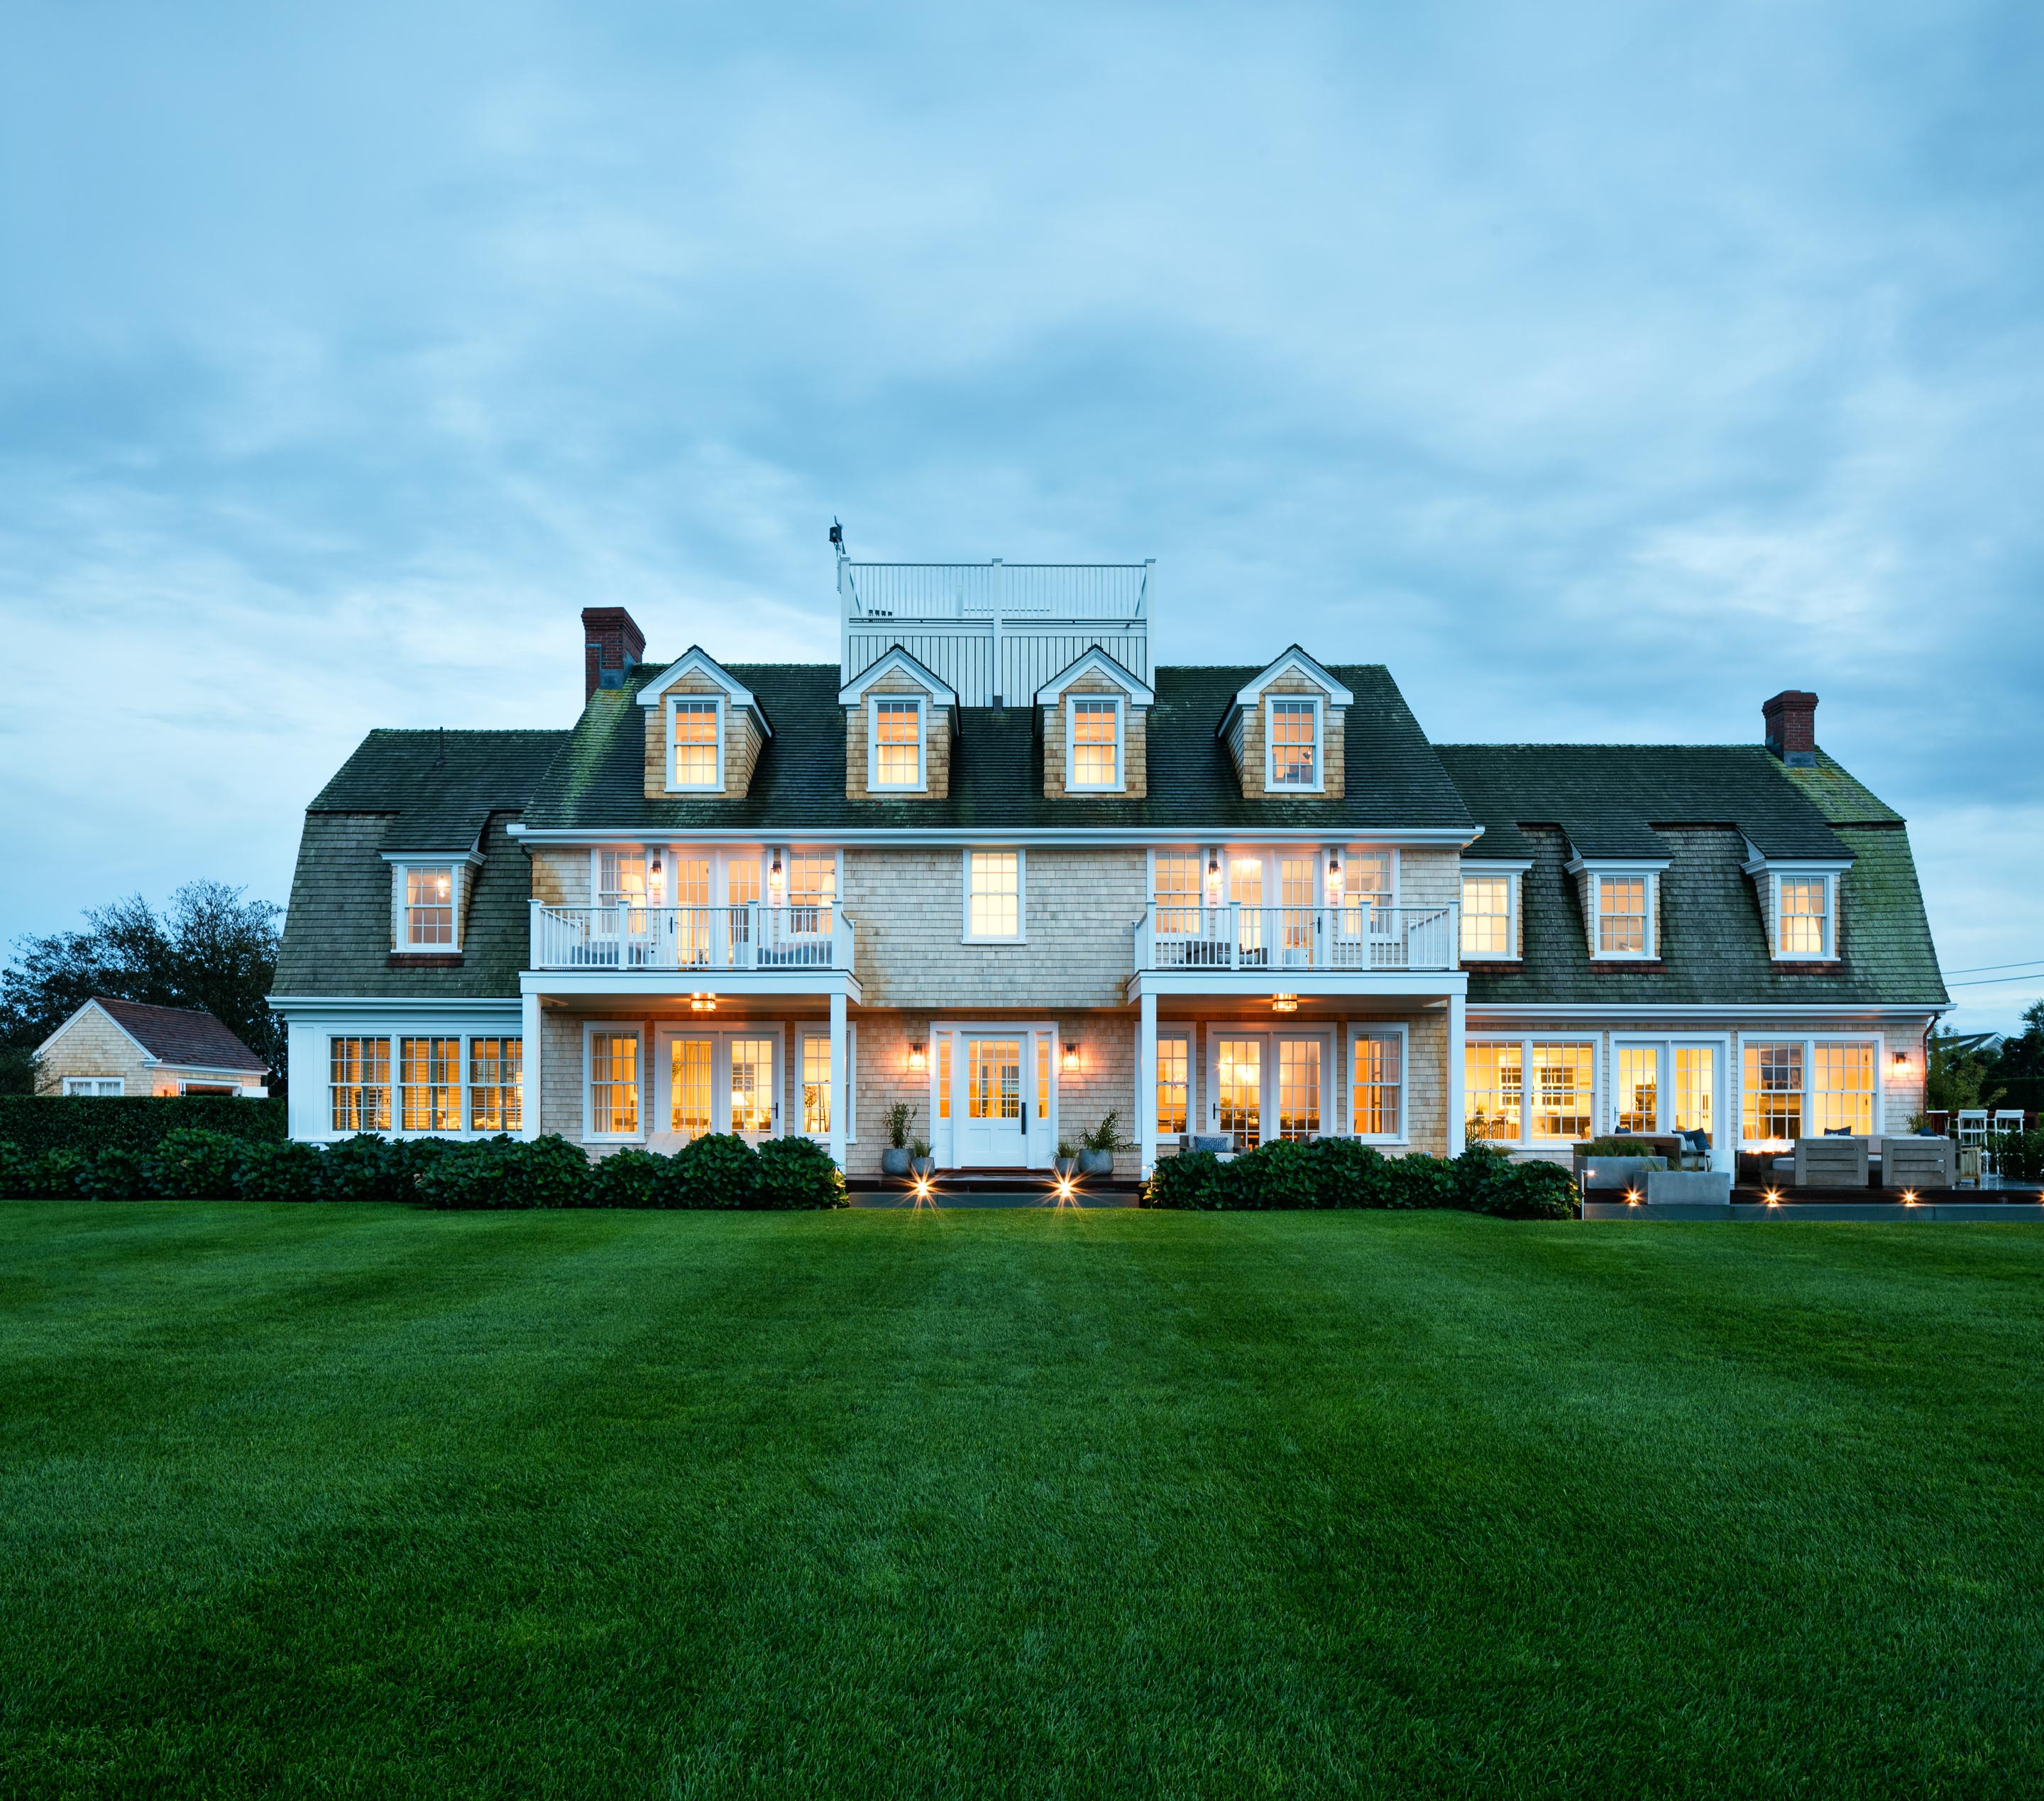 Large home with green pastures hearder image